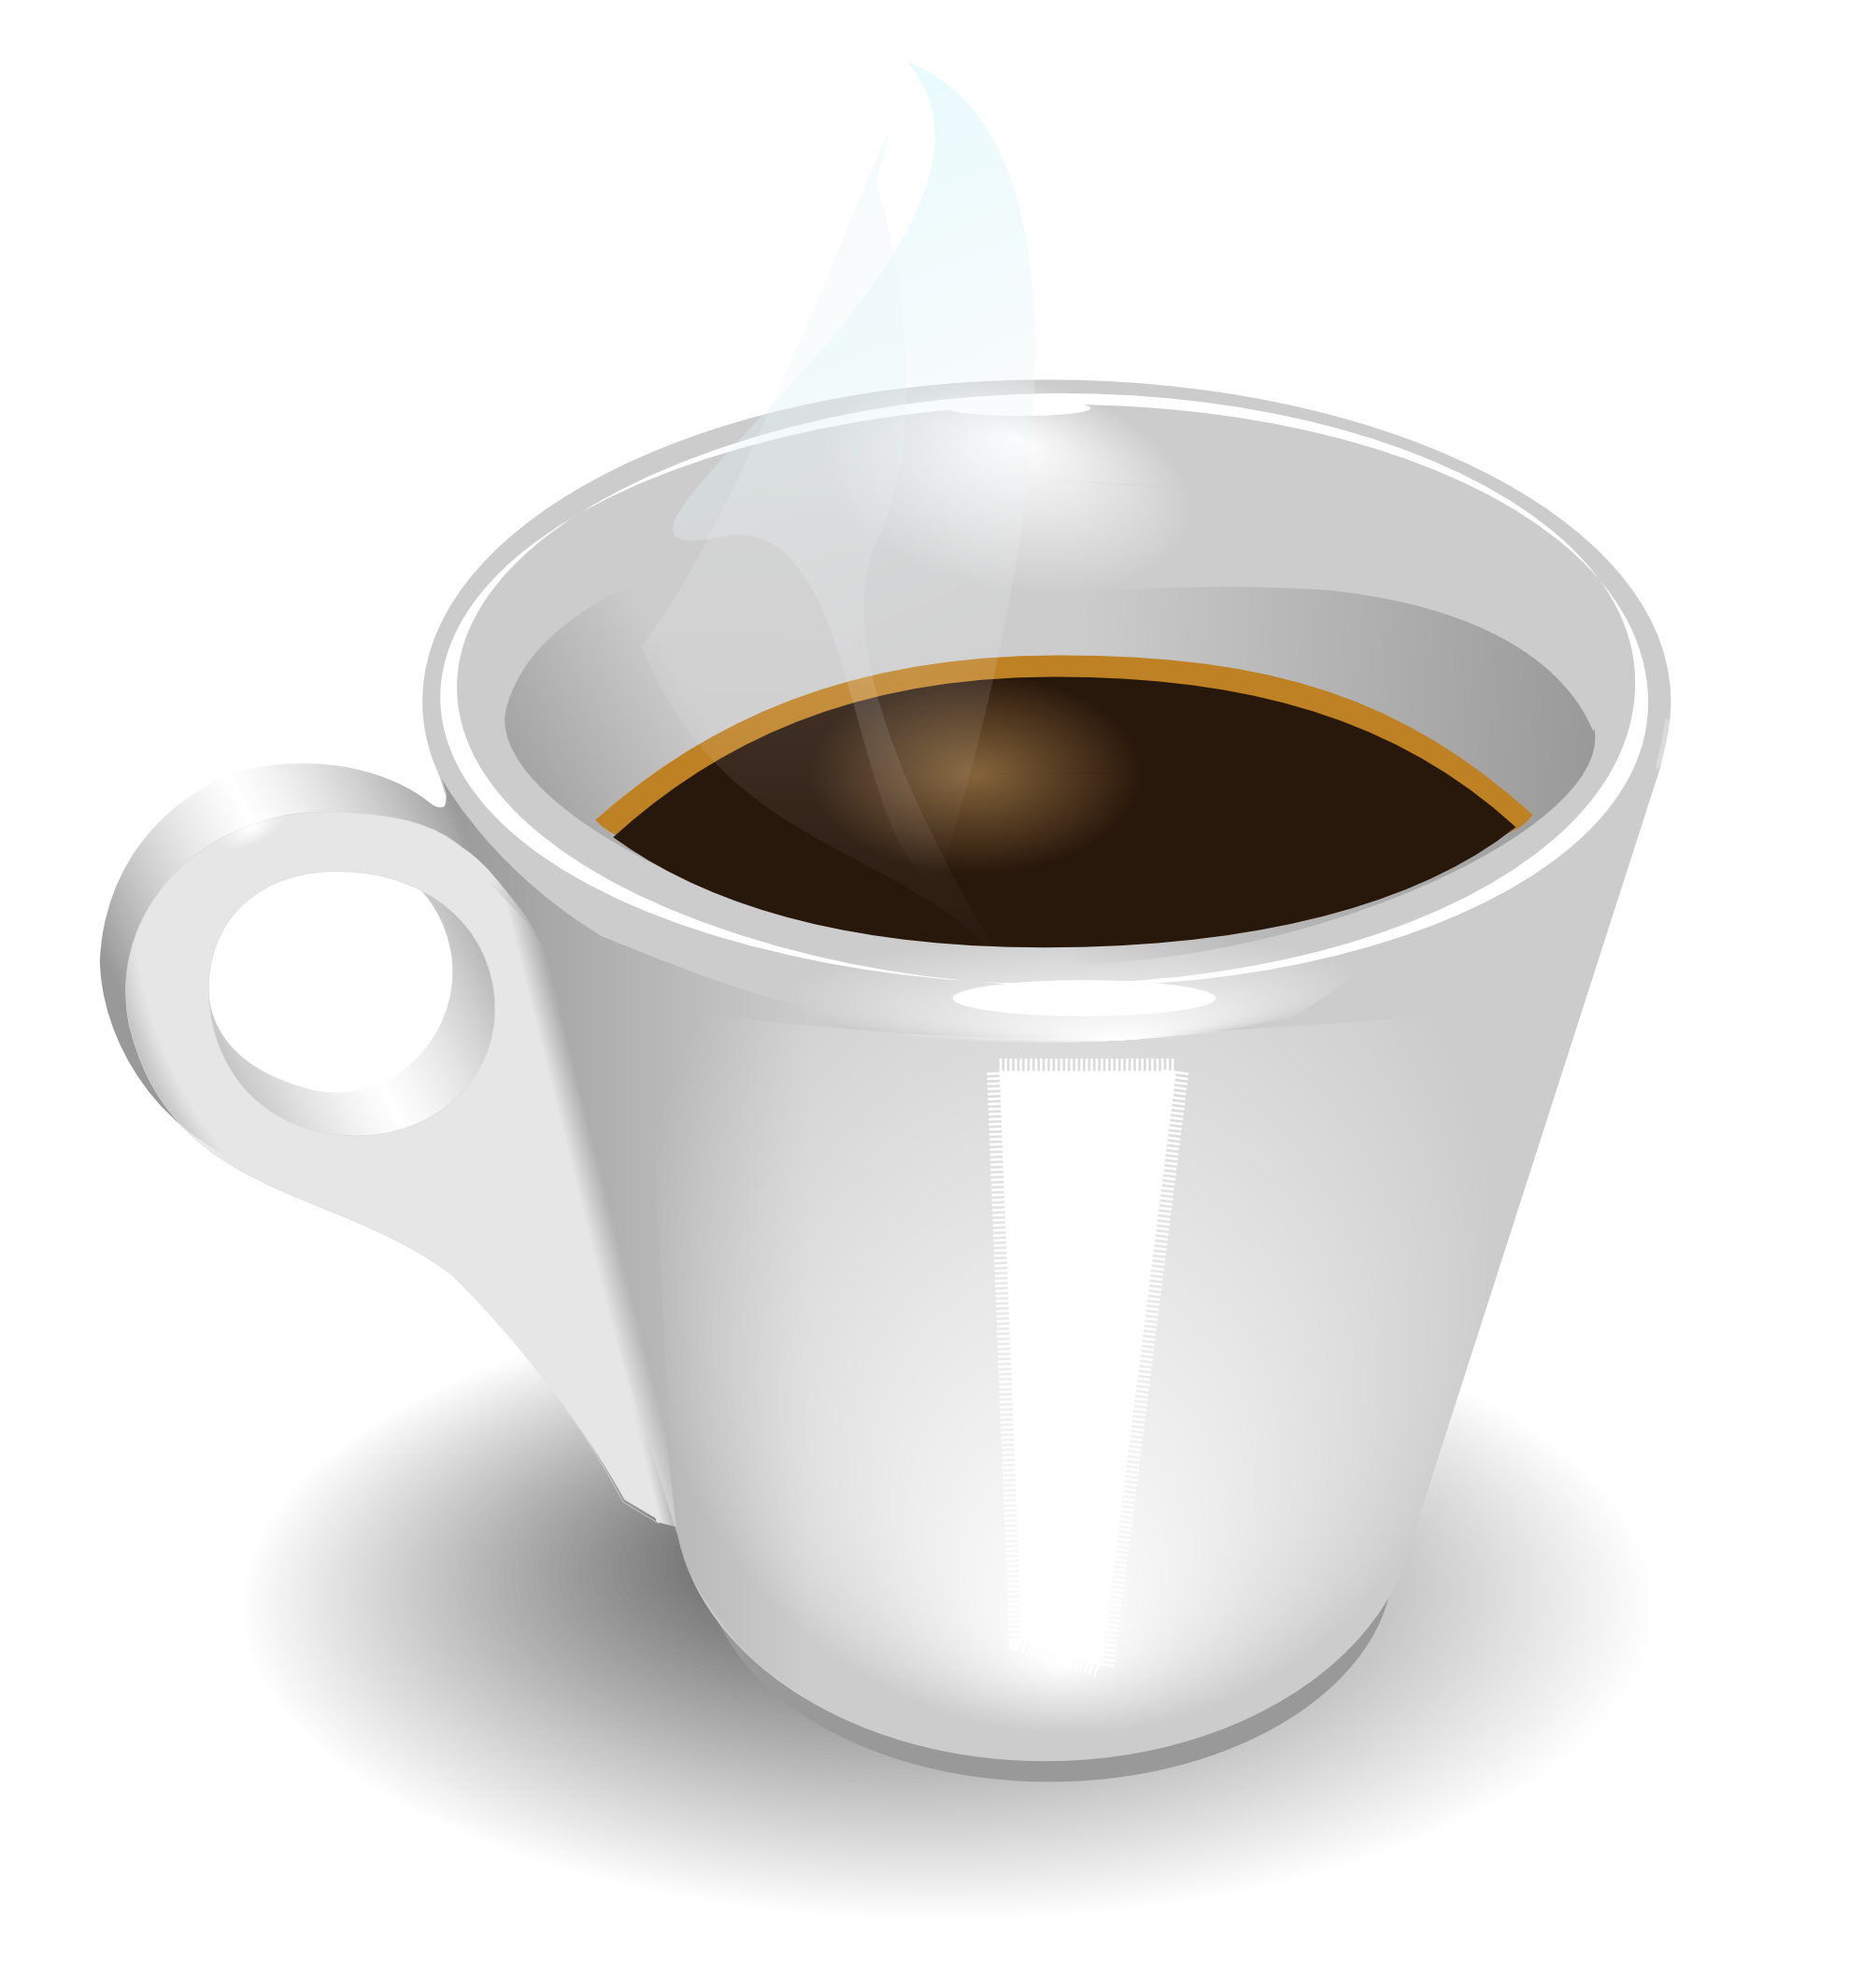 cup PNG image - PNG Cup Of Coffee